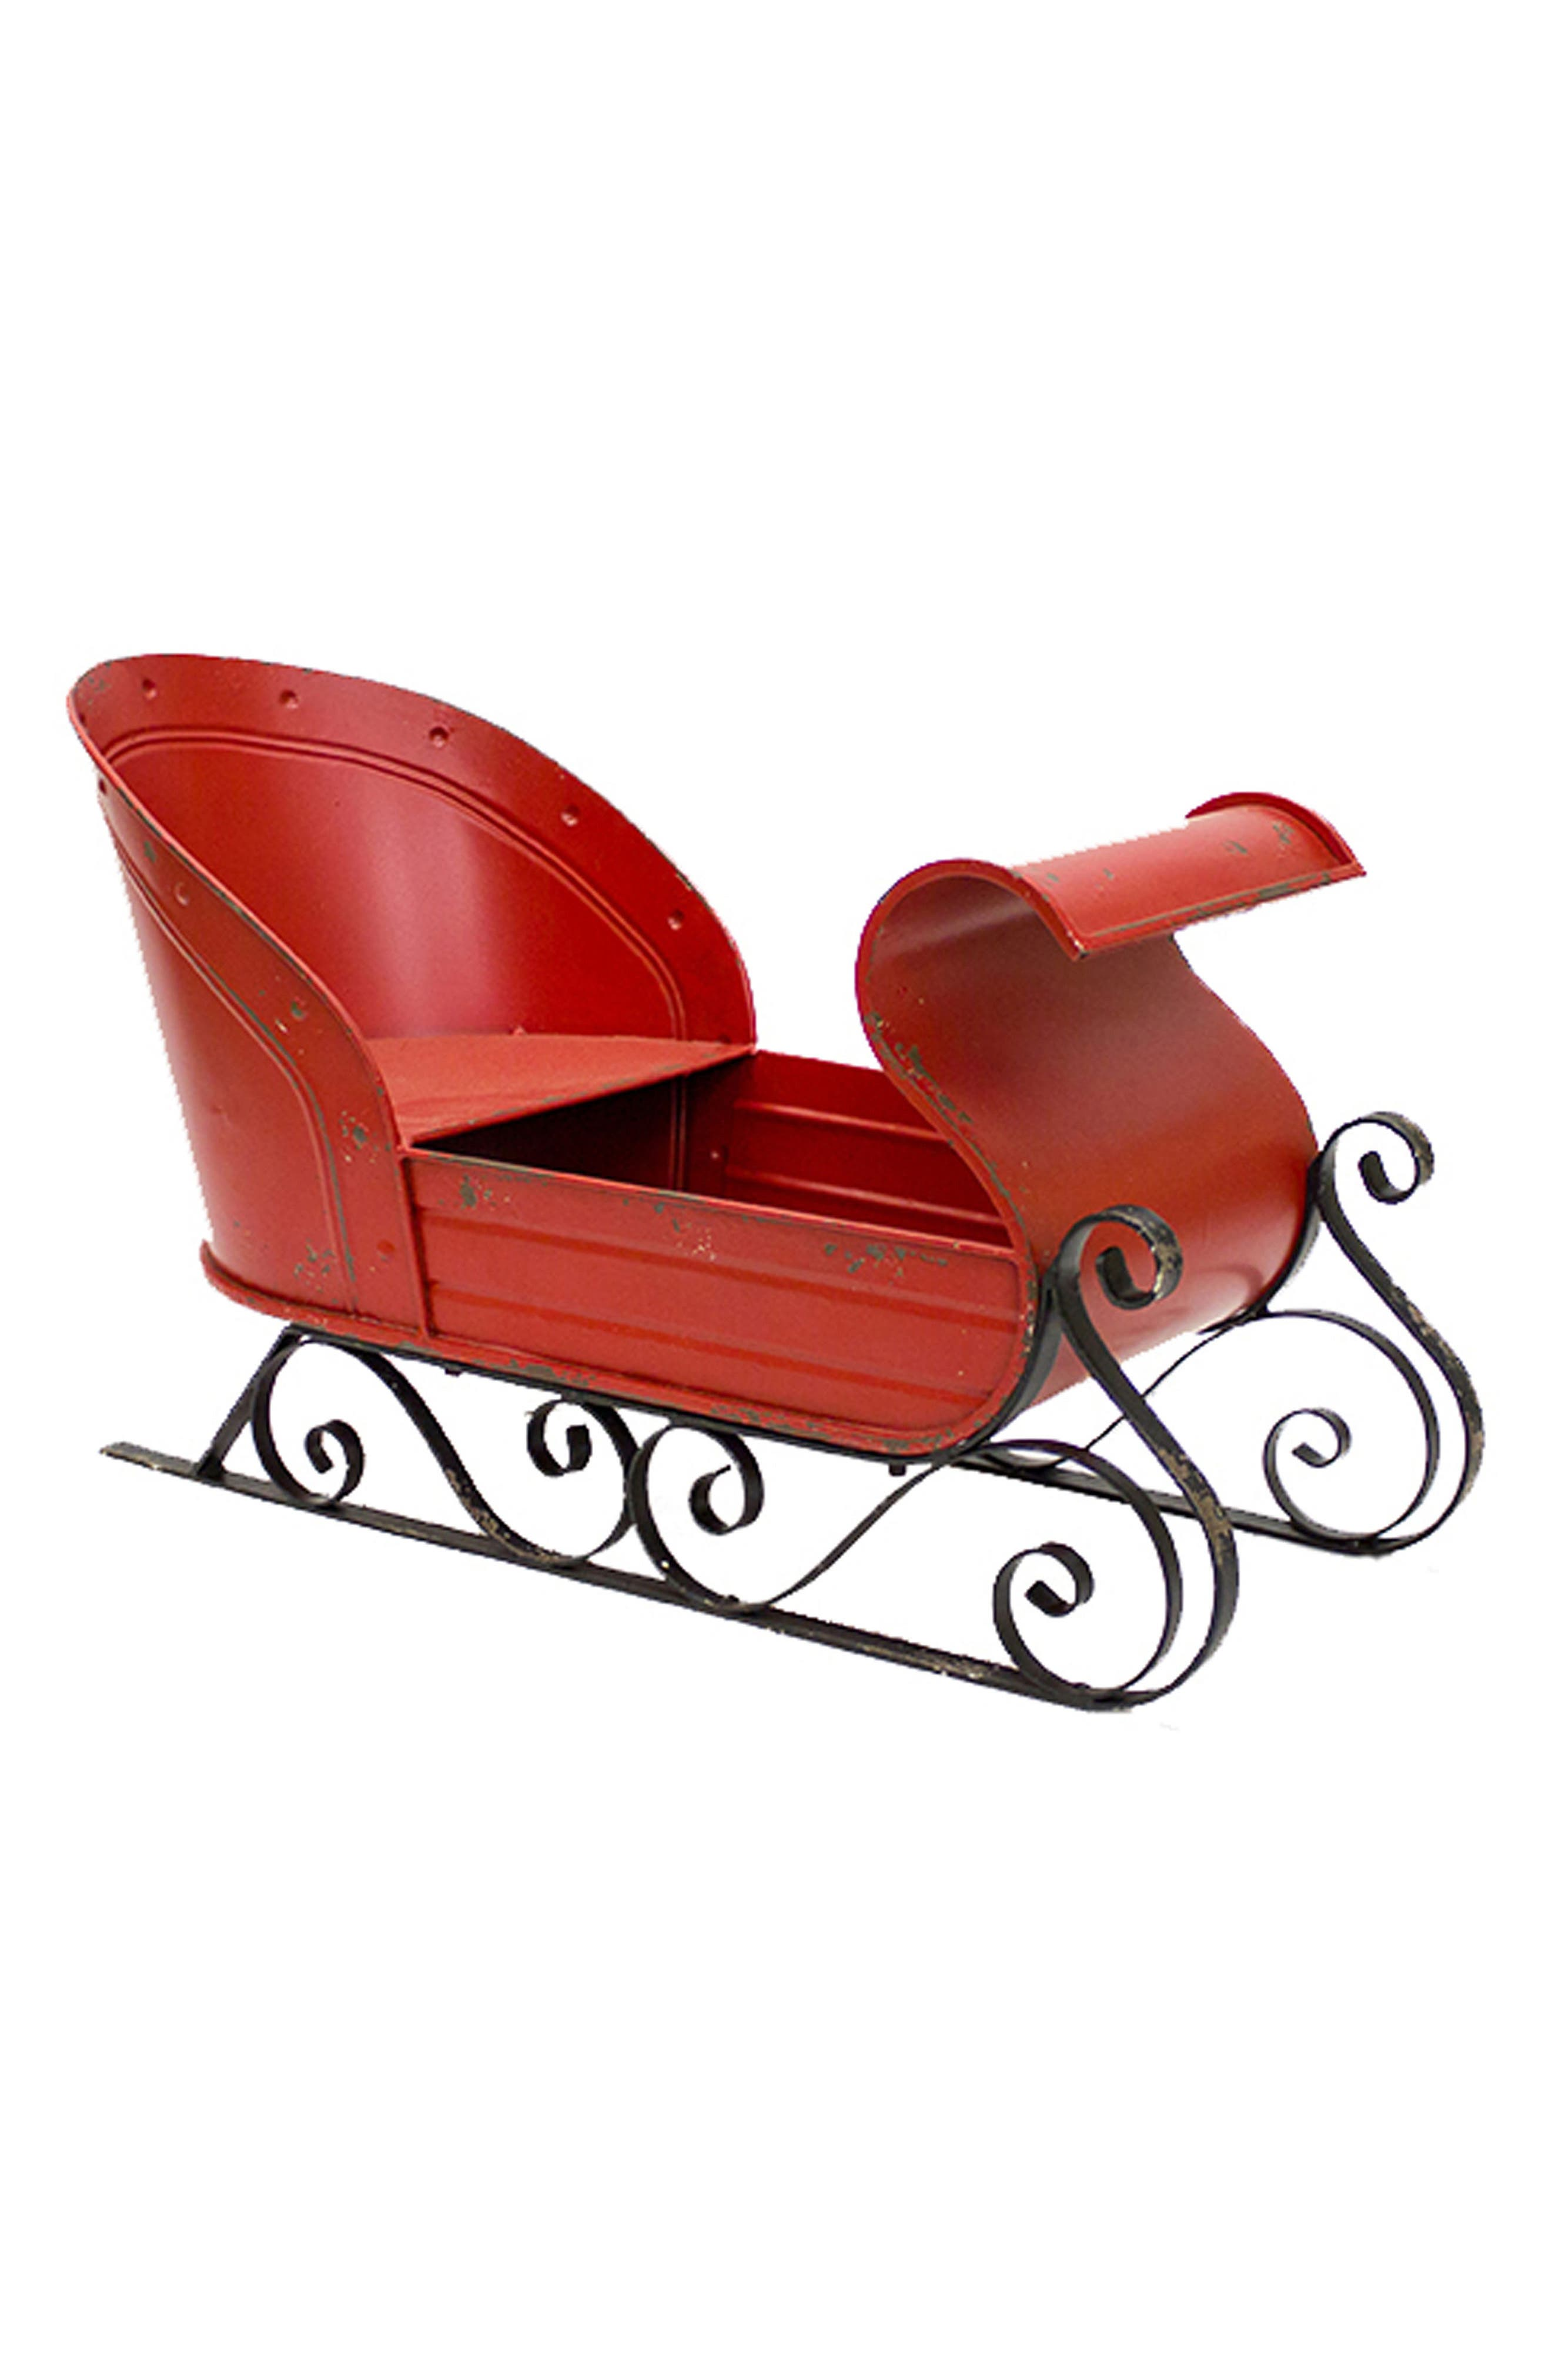 Main Image - Melrose Gifts Sleigh Decoration